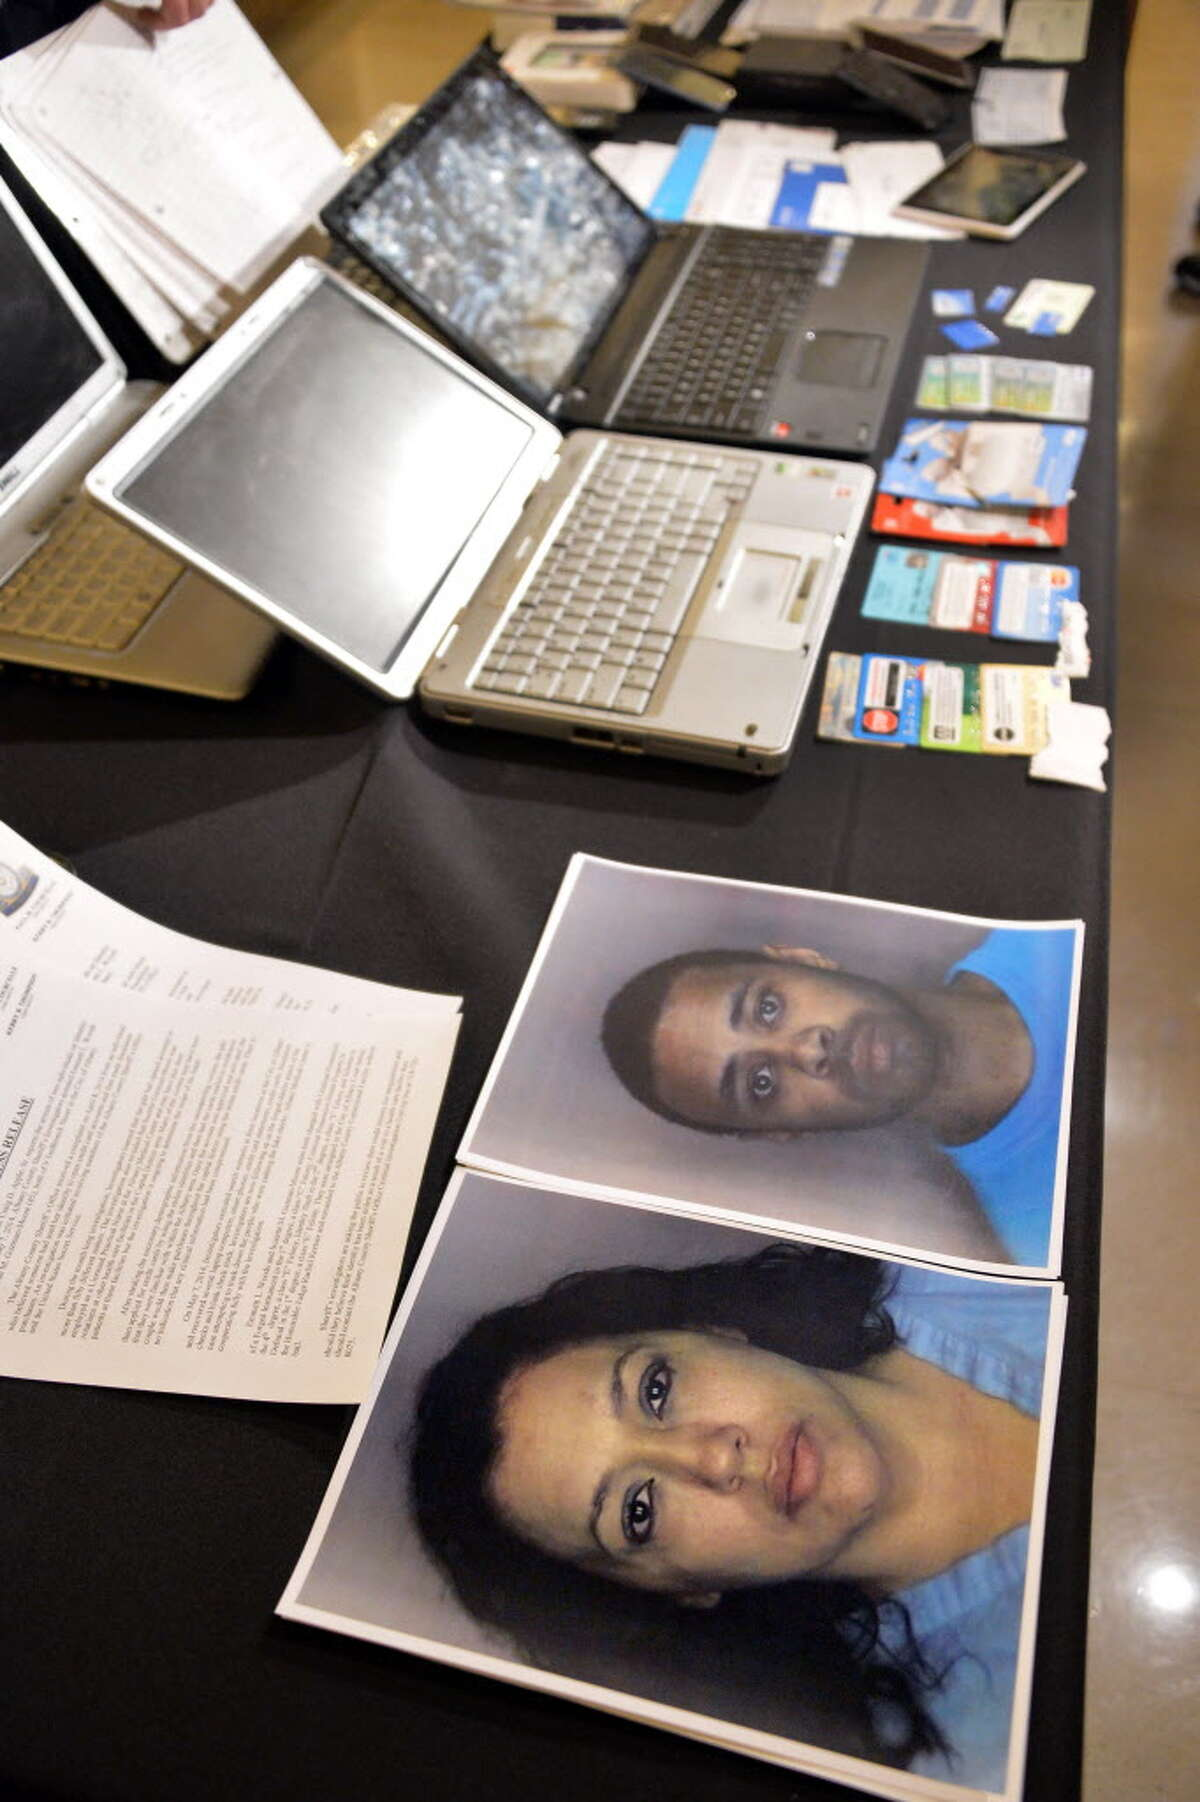 Albany Co. Sheriff Dept. photos of Suzette M. Guzman-Moore, bottom, and Emmett L. Woods on a table full of evidence at the announcement of their arrest on Identity Theft charges during at news conference Thursday May 8, 2014, in Albany, NY. (John Carl D'Annibale / Times Union)